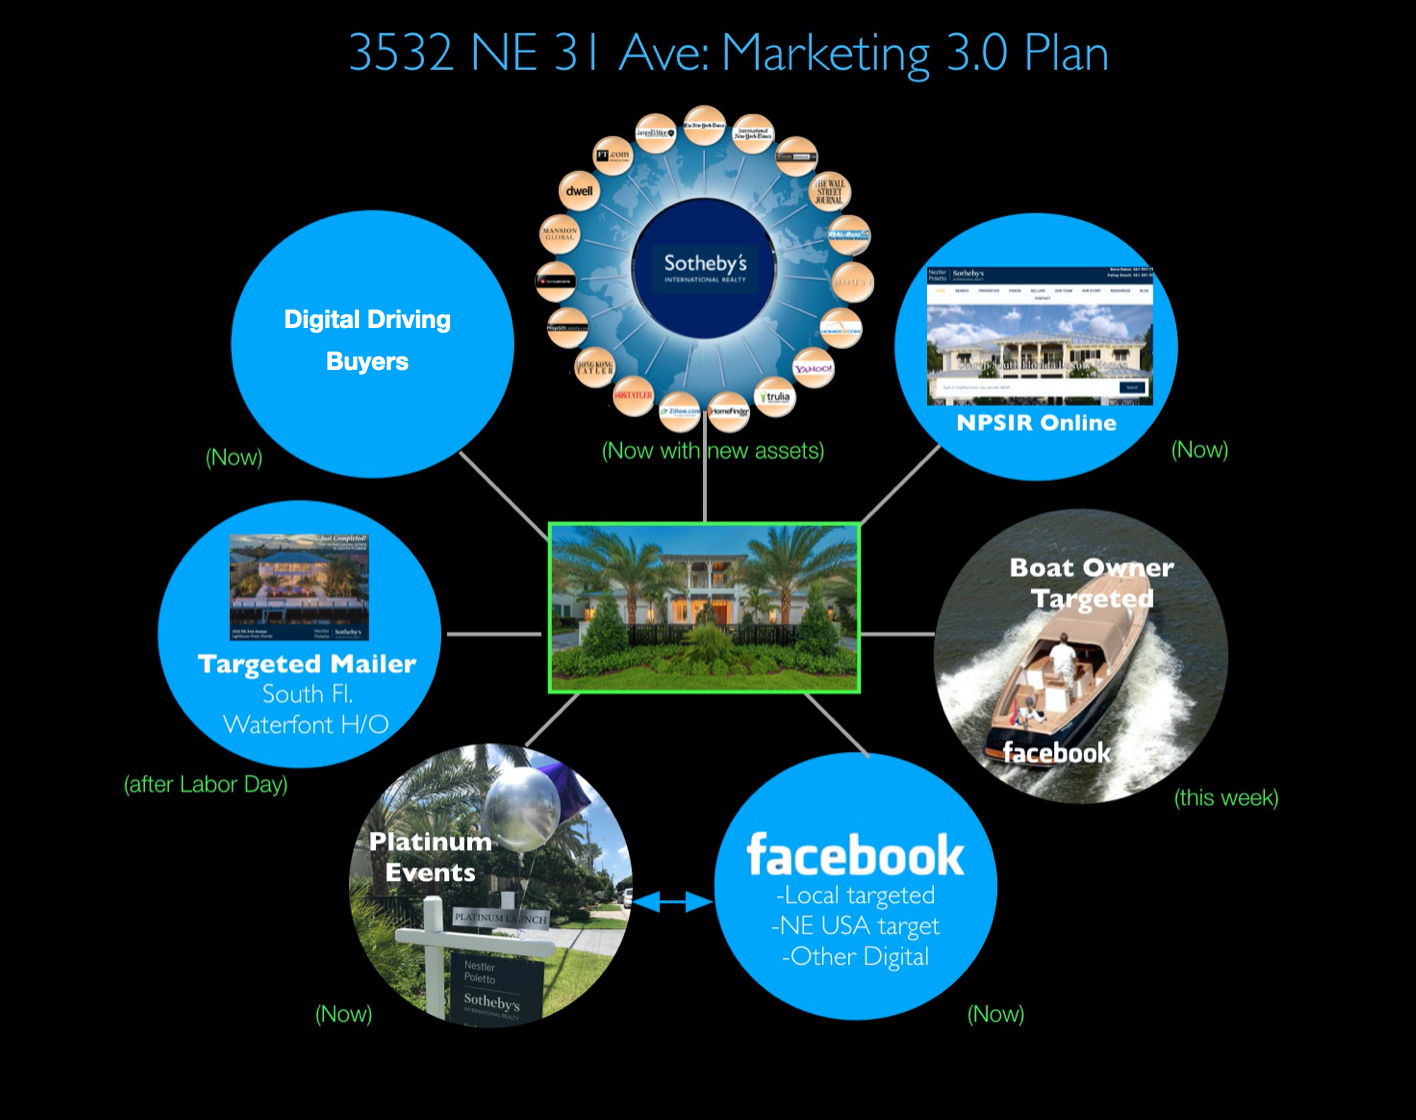 The 5 Star Digitally Led Marketing Plan: Florida, NYC Metro / NE & Globally